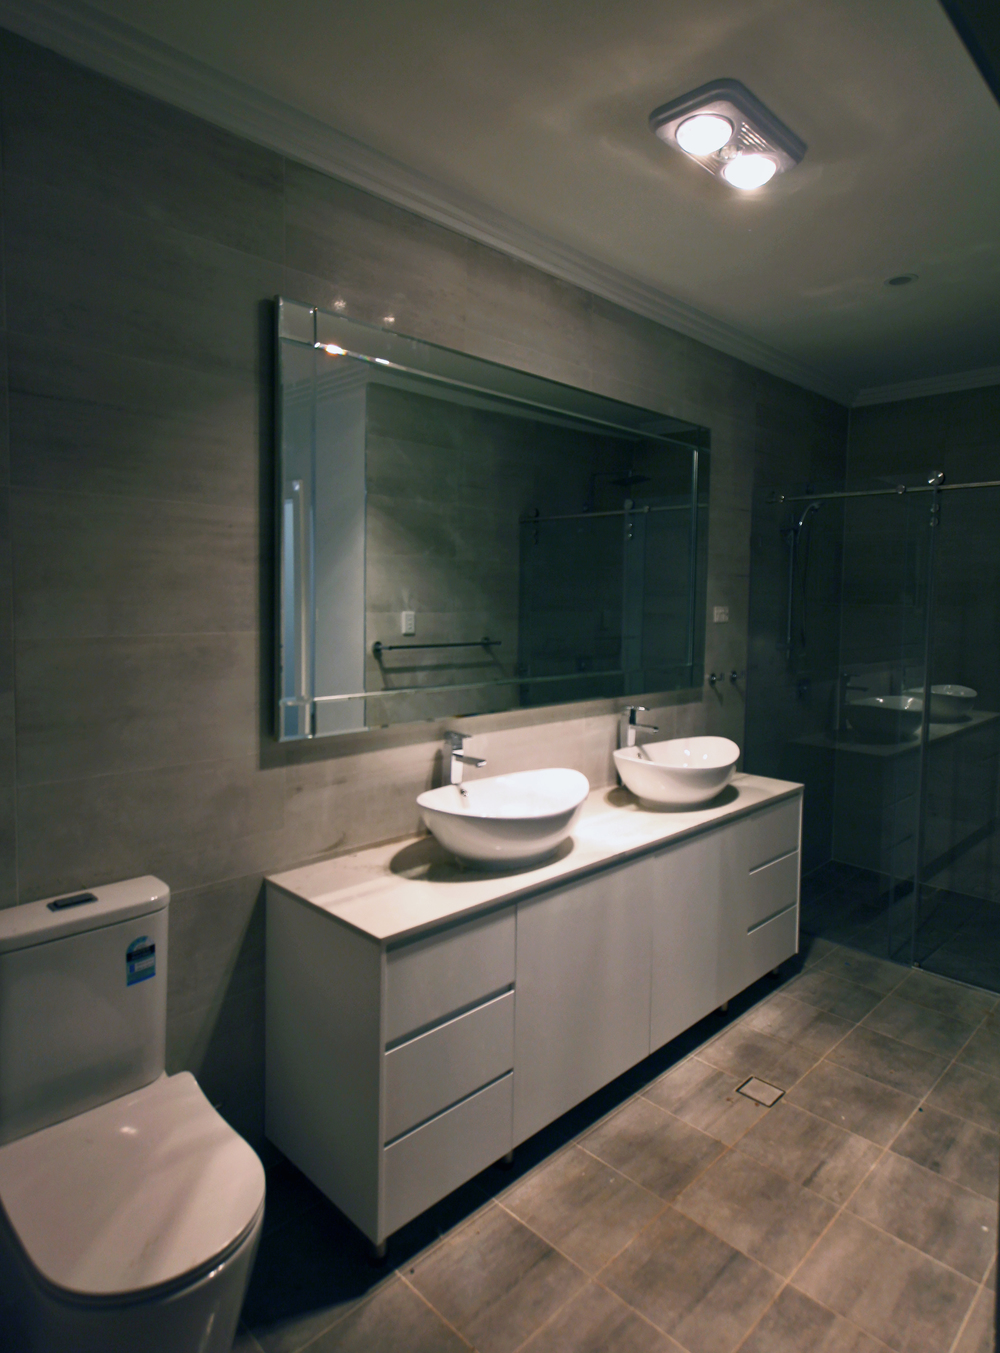 mirror bathroom modern bevel perfectly hung.jpg